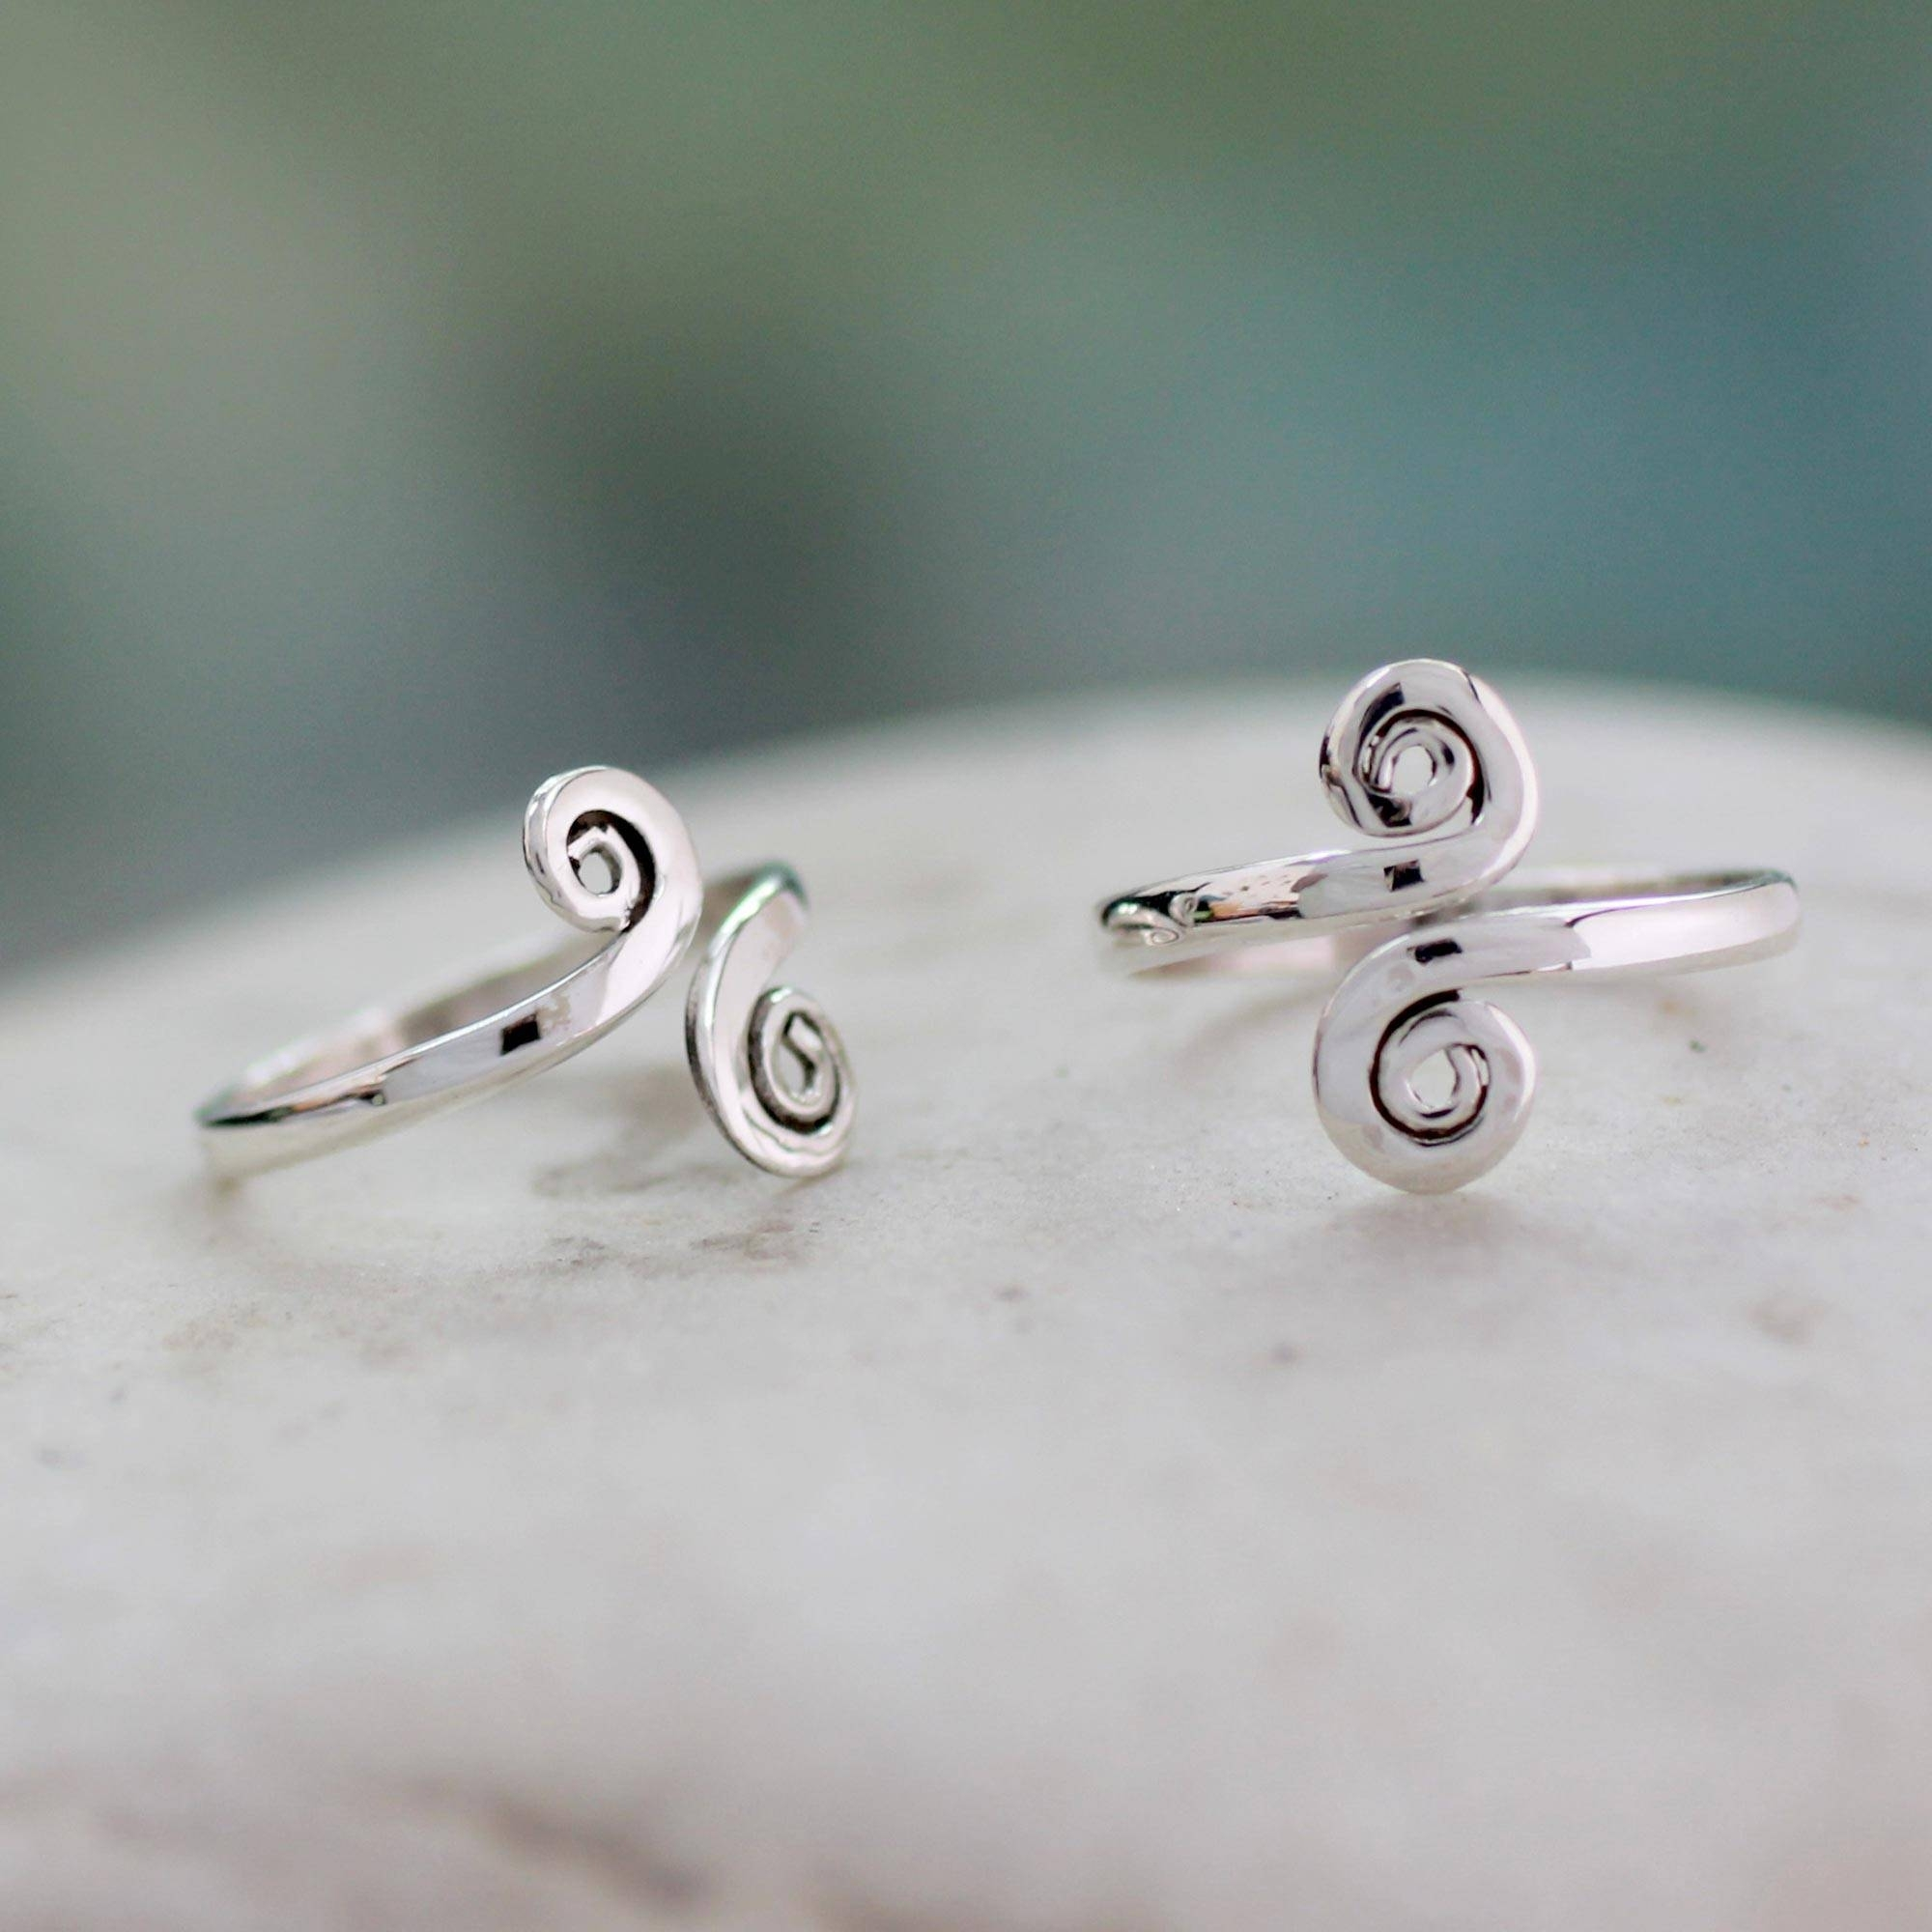 Handcrafted Sterling Silver Toe Rings From India (pair Intended For Latest Indian Toe Rings (View 8 of 15)